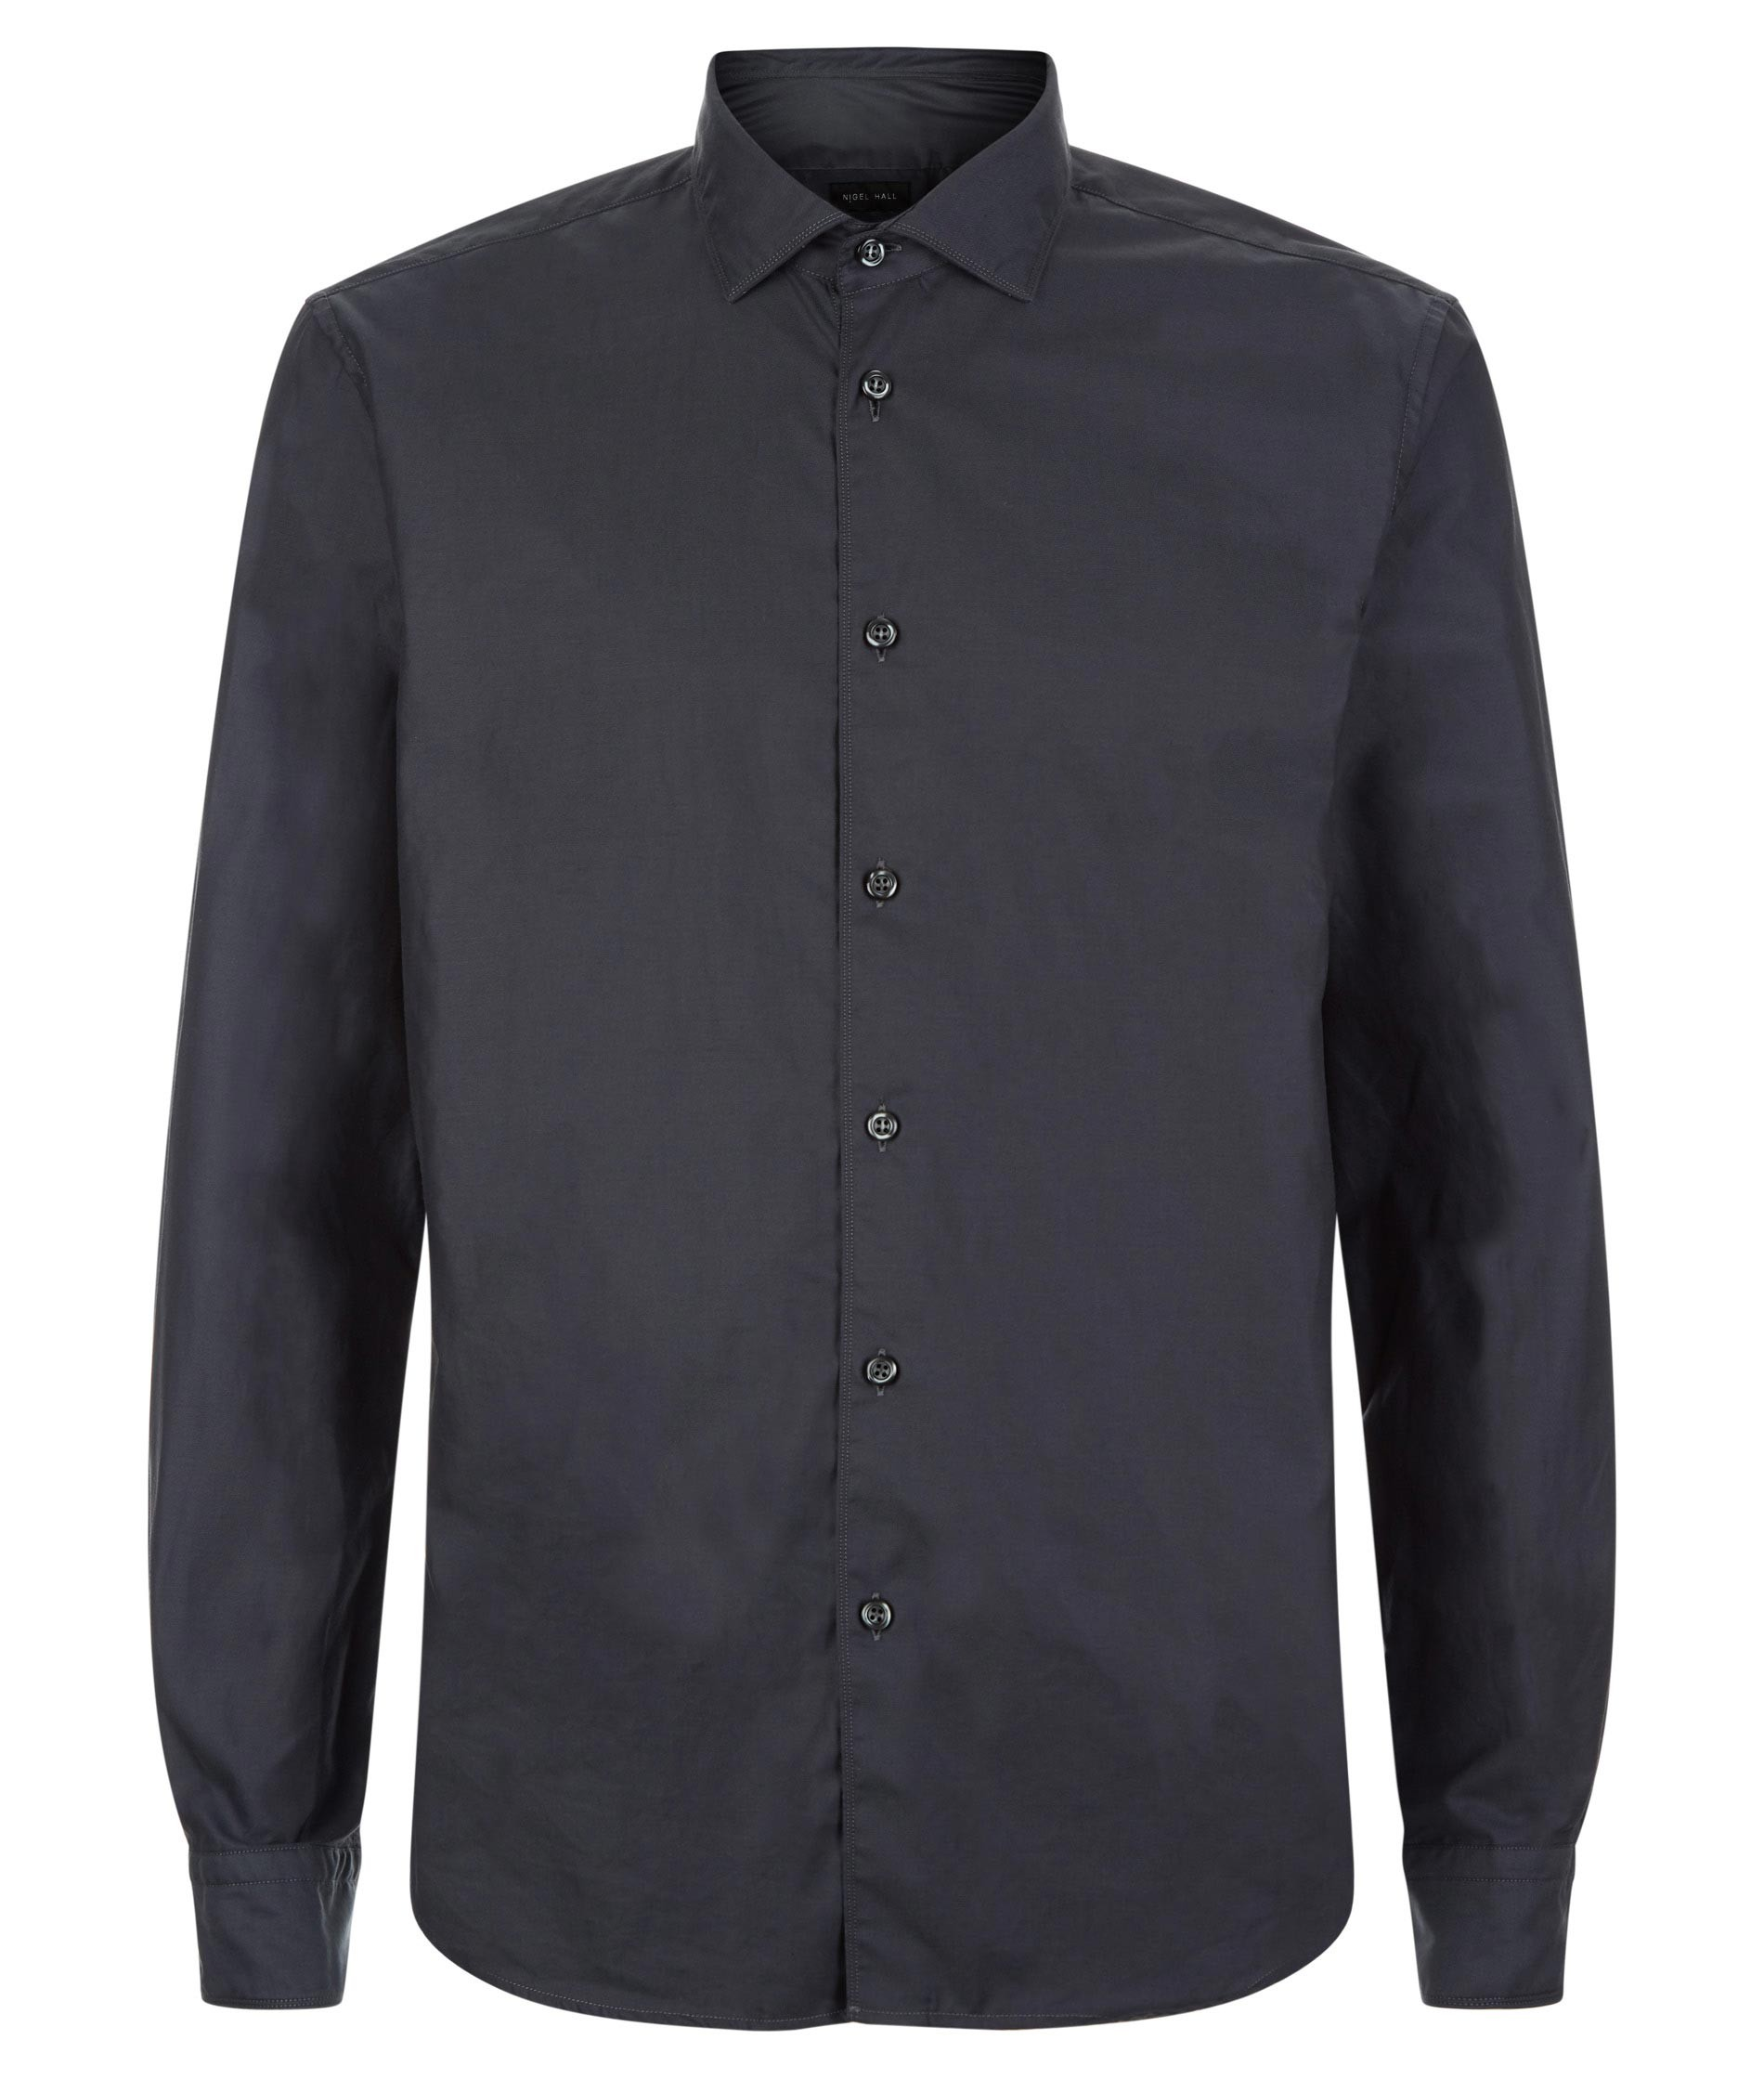 Nigel Hall Grey Tailored fit shirt - Enzo